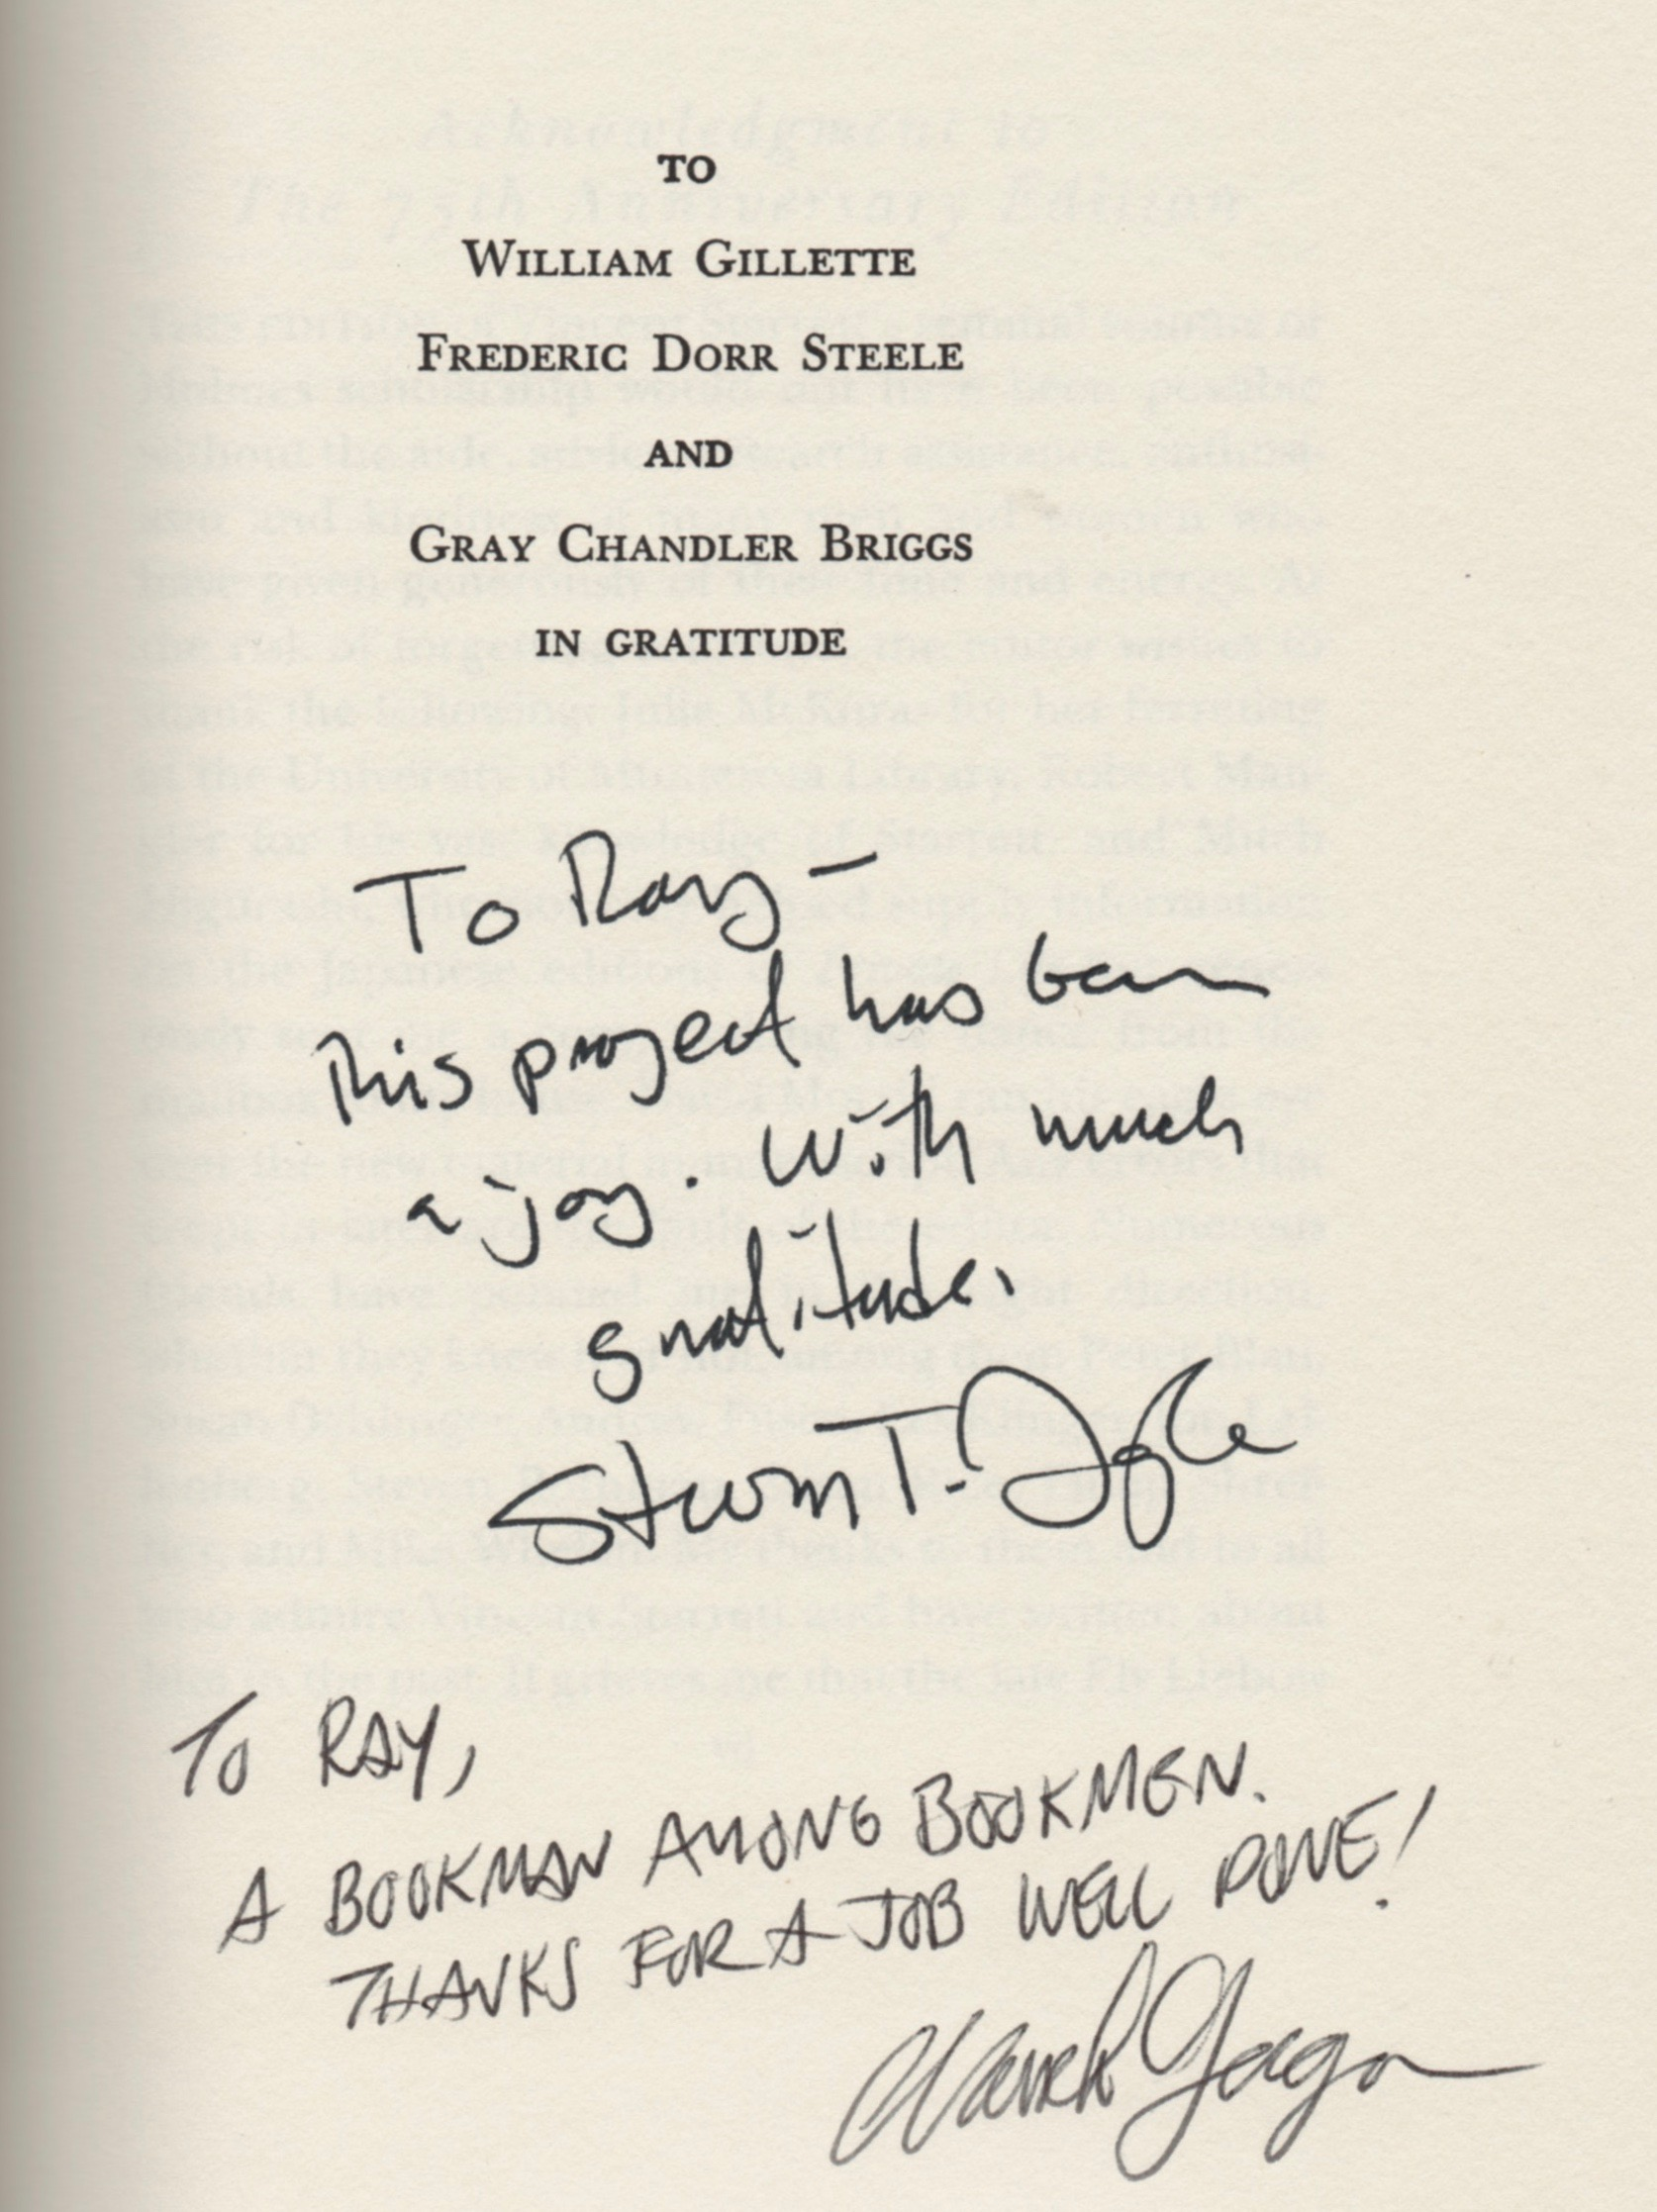 This is Ray's inscribed copy of the 75th anniversary edition with good wishes from Steve Doyle and Mark Gagen.